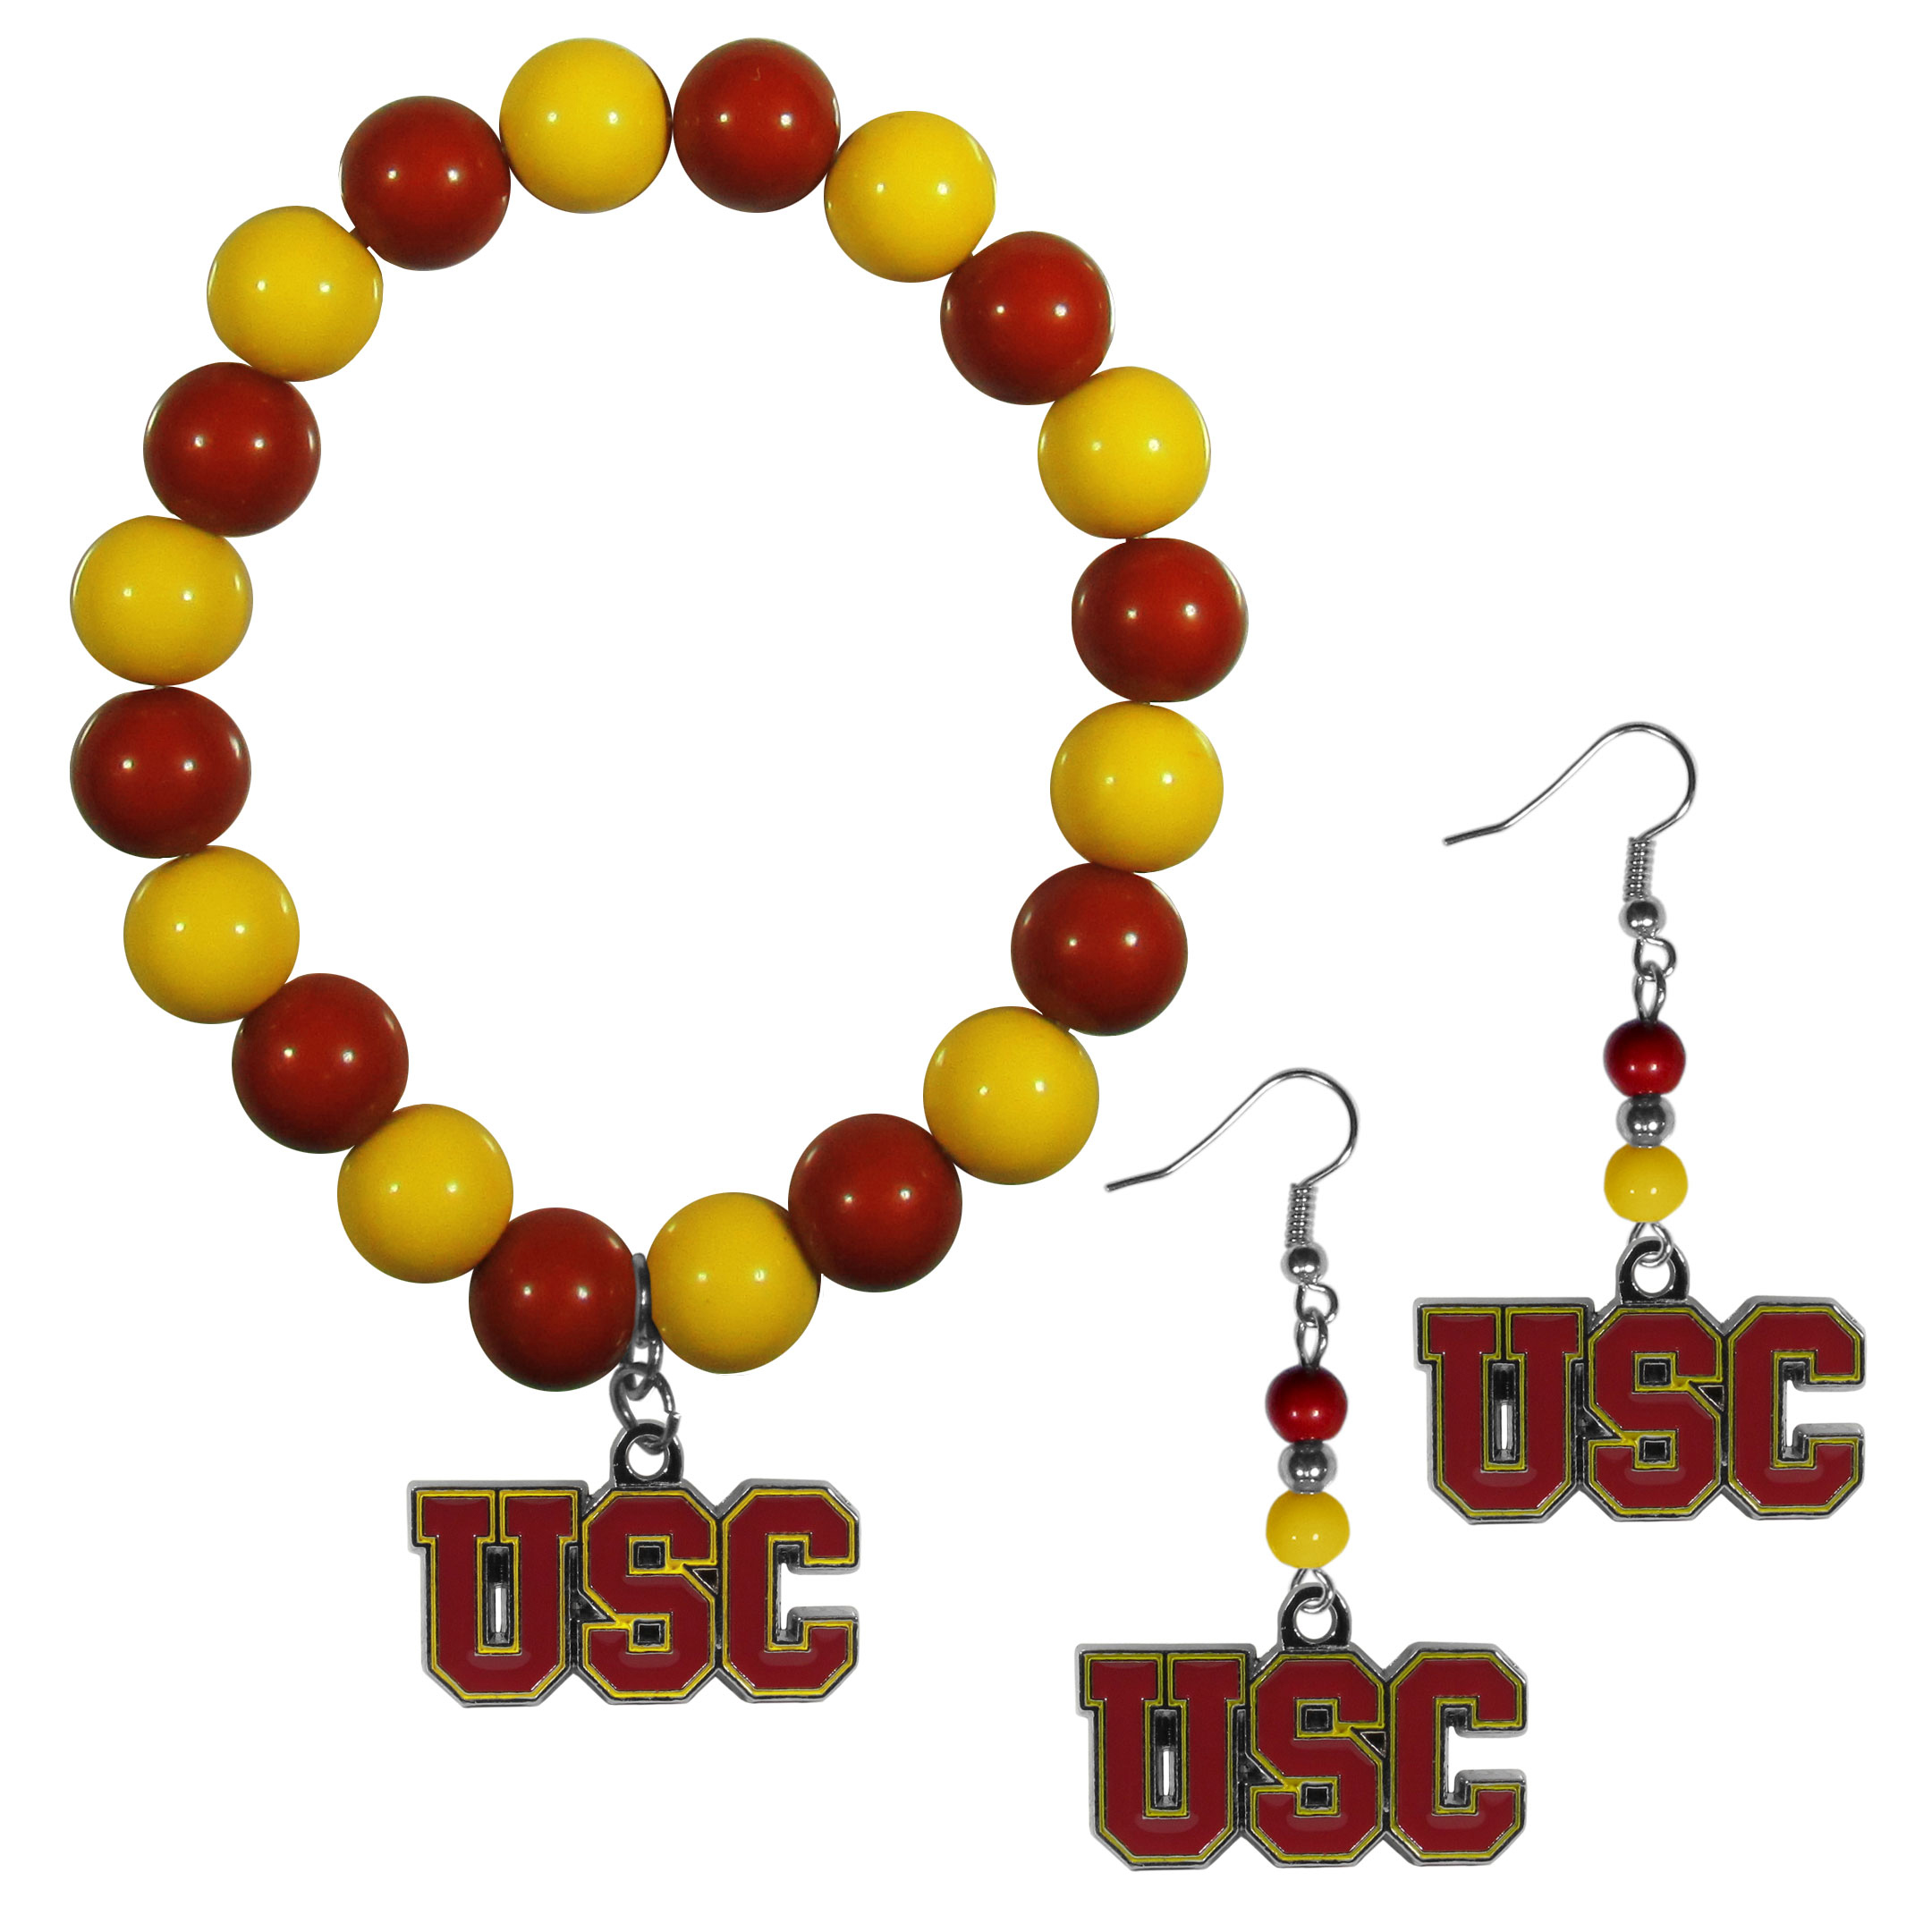 USC Trojans Fan Bead Earrings and Bracelet Set - This fun and colorful USC Trojans fan bead jewelry set is fun and casual with eye-catching beads in bright team colors. The fashionable dangle earrings feature a team colored beads that drop down to a carved and enameled charm. The stretch bracelet has larger matching beads that make a striking statement and have a matching team charm. These sassy yet sporty jewelry pieces make a perfect gift for any female fan. Spice up your game-day outfit with these fun colorful earrings and bracelet that are also cute enough for any day.